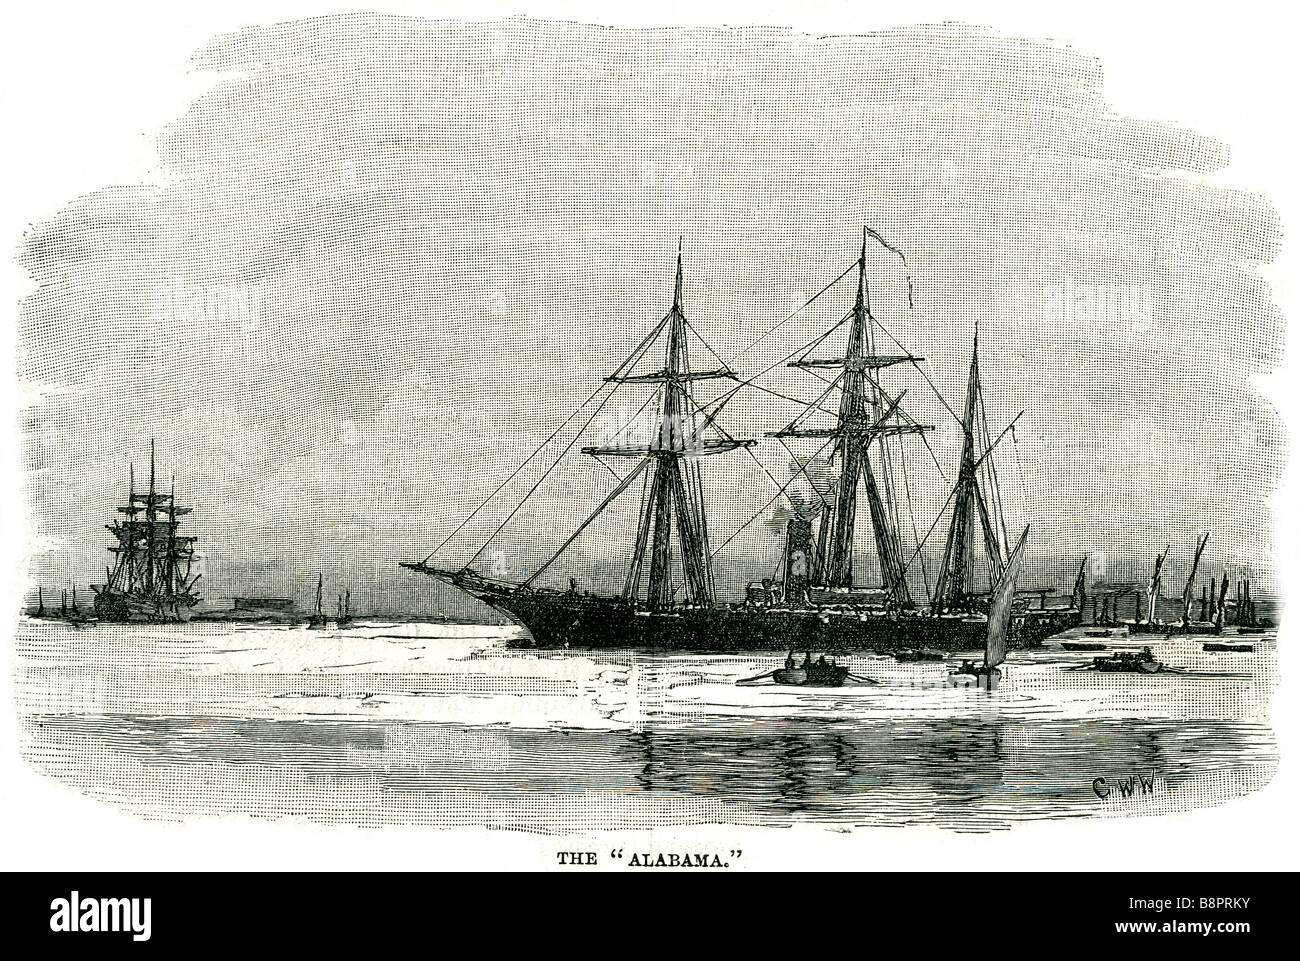 CSS Alabama screw sloop-of-war built 1871 Confederate States Navy Birkenhead United Kingdom - Stock Image